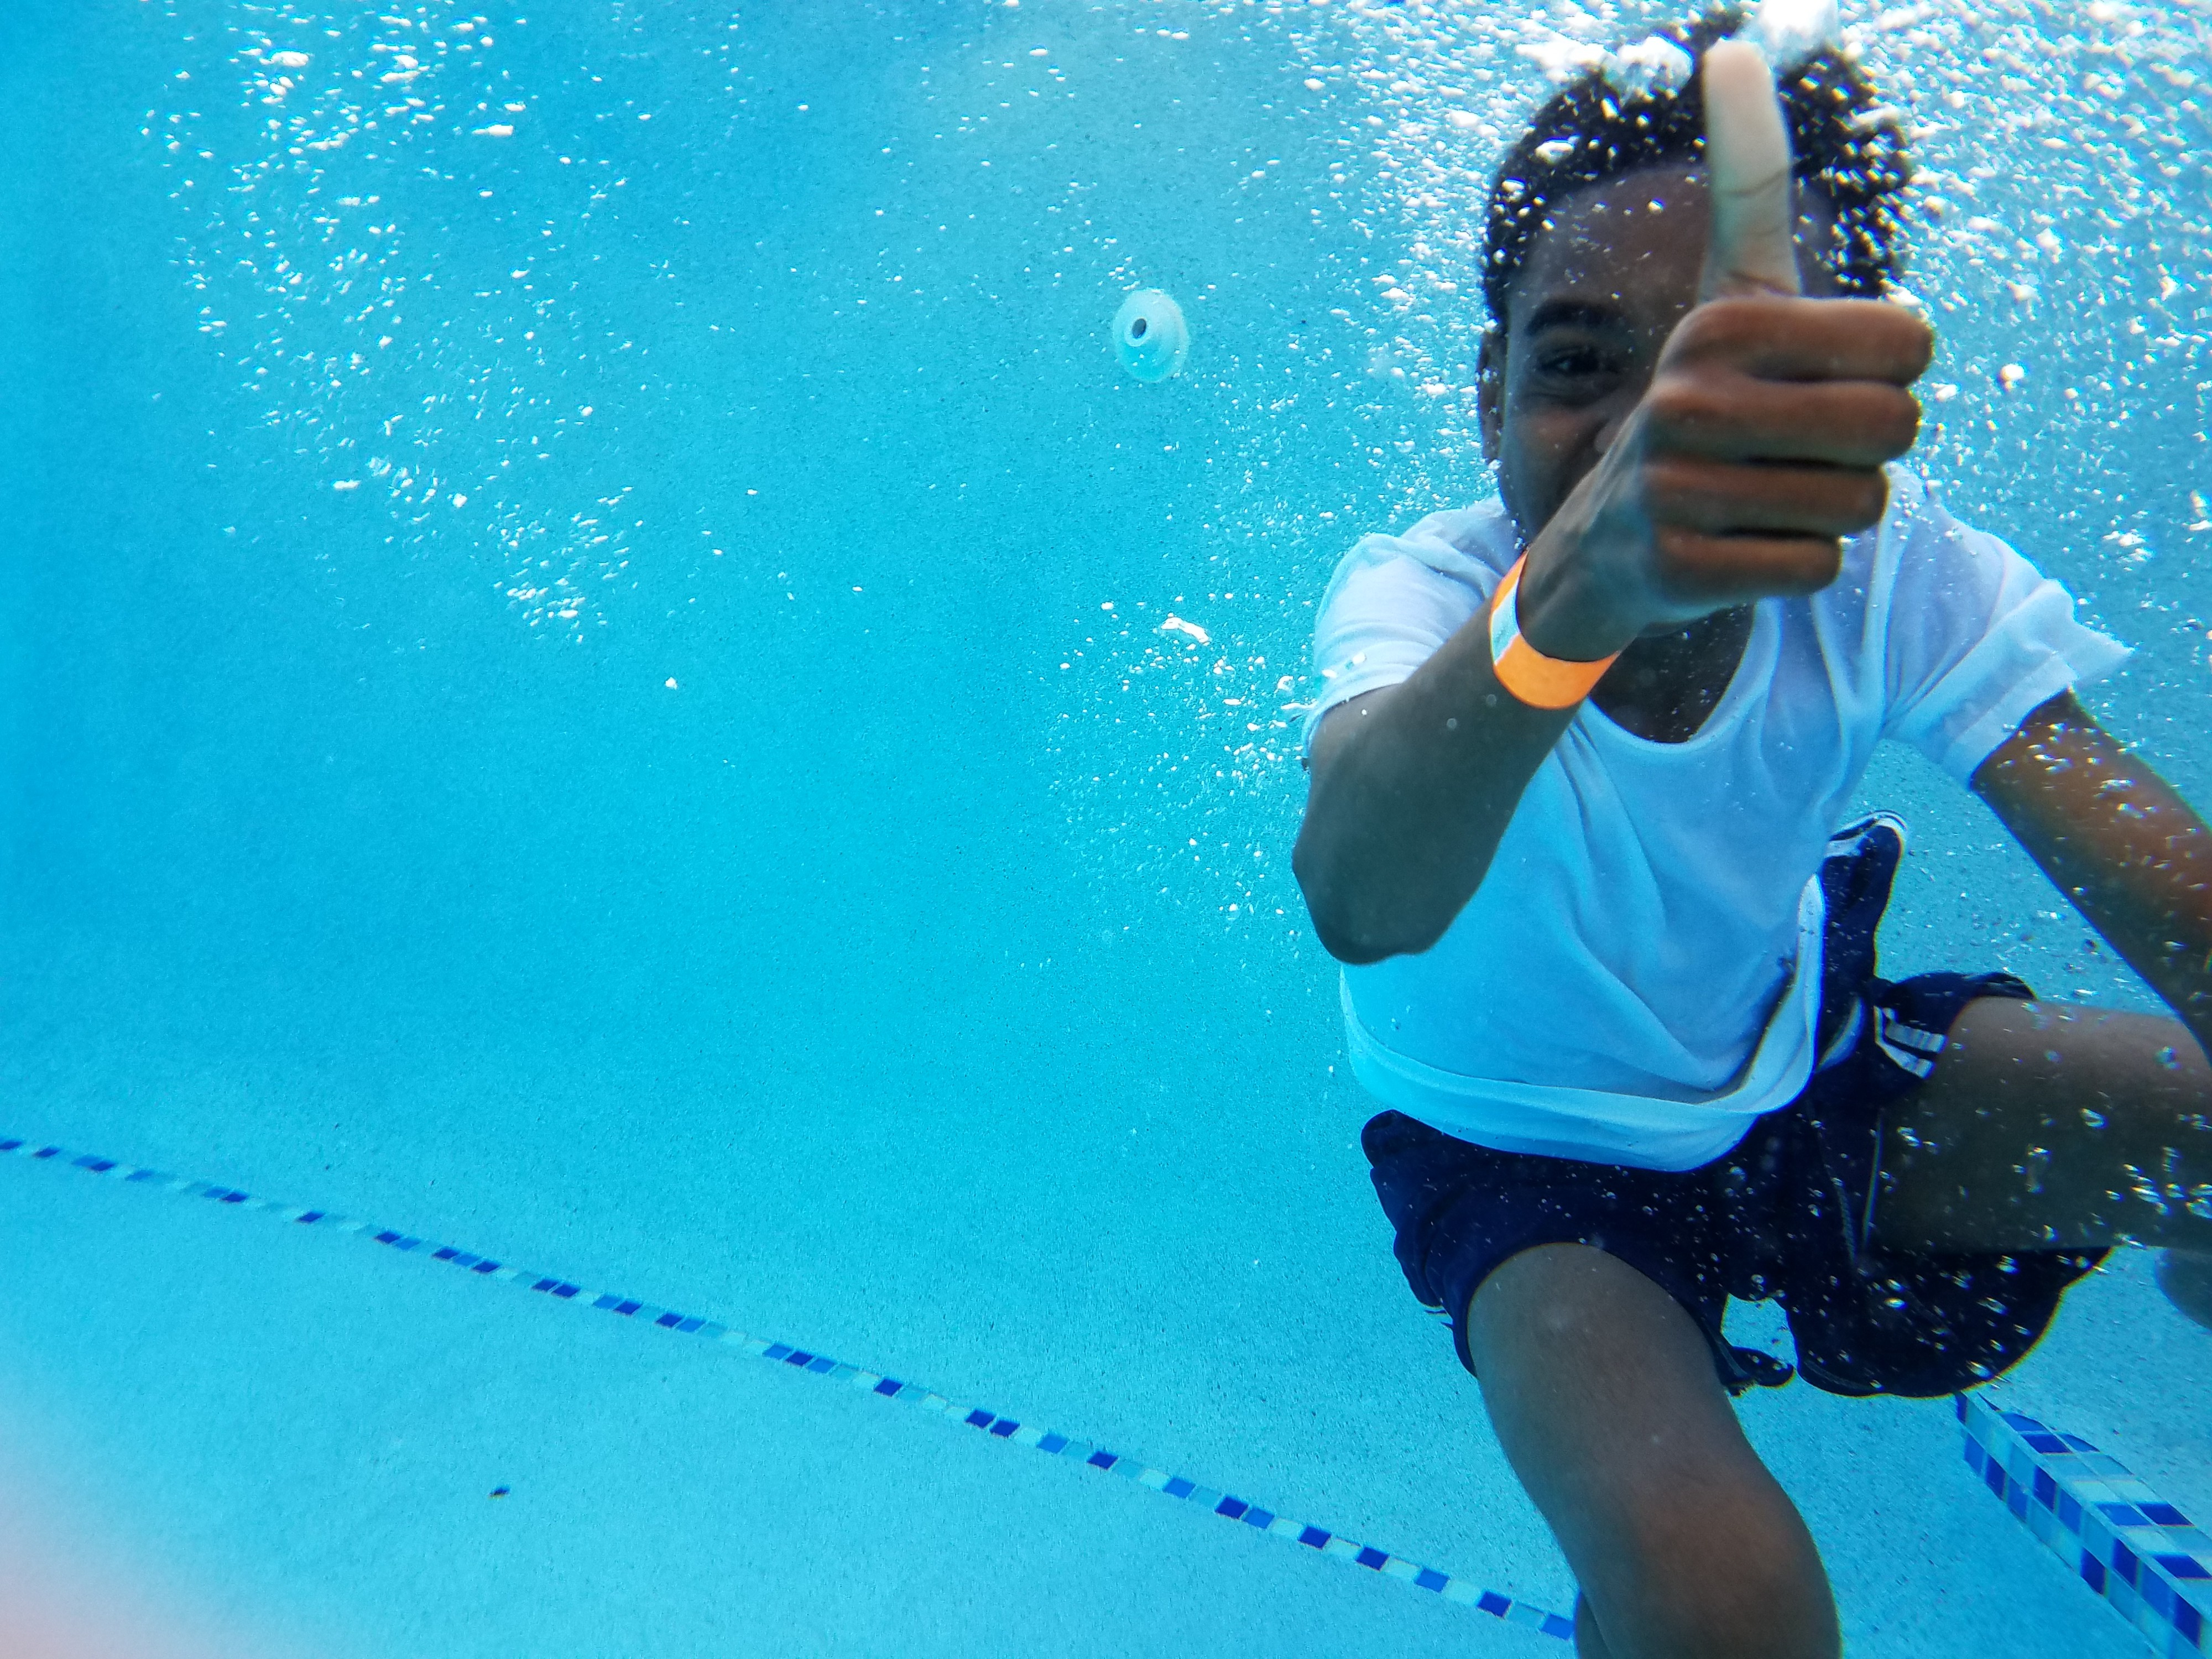 Child giving thumbs up signal underwater